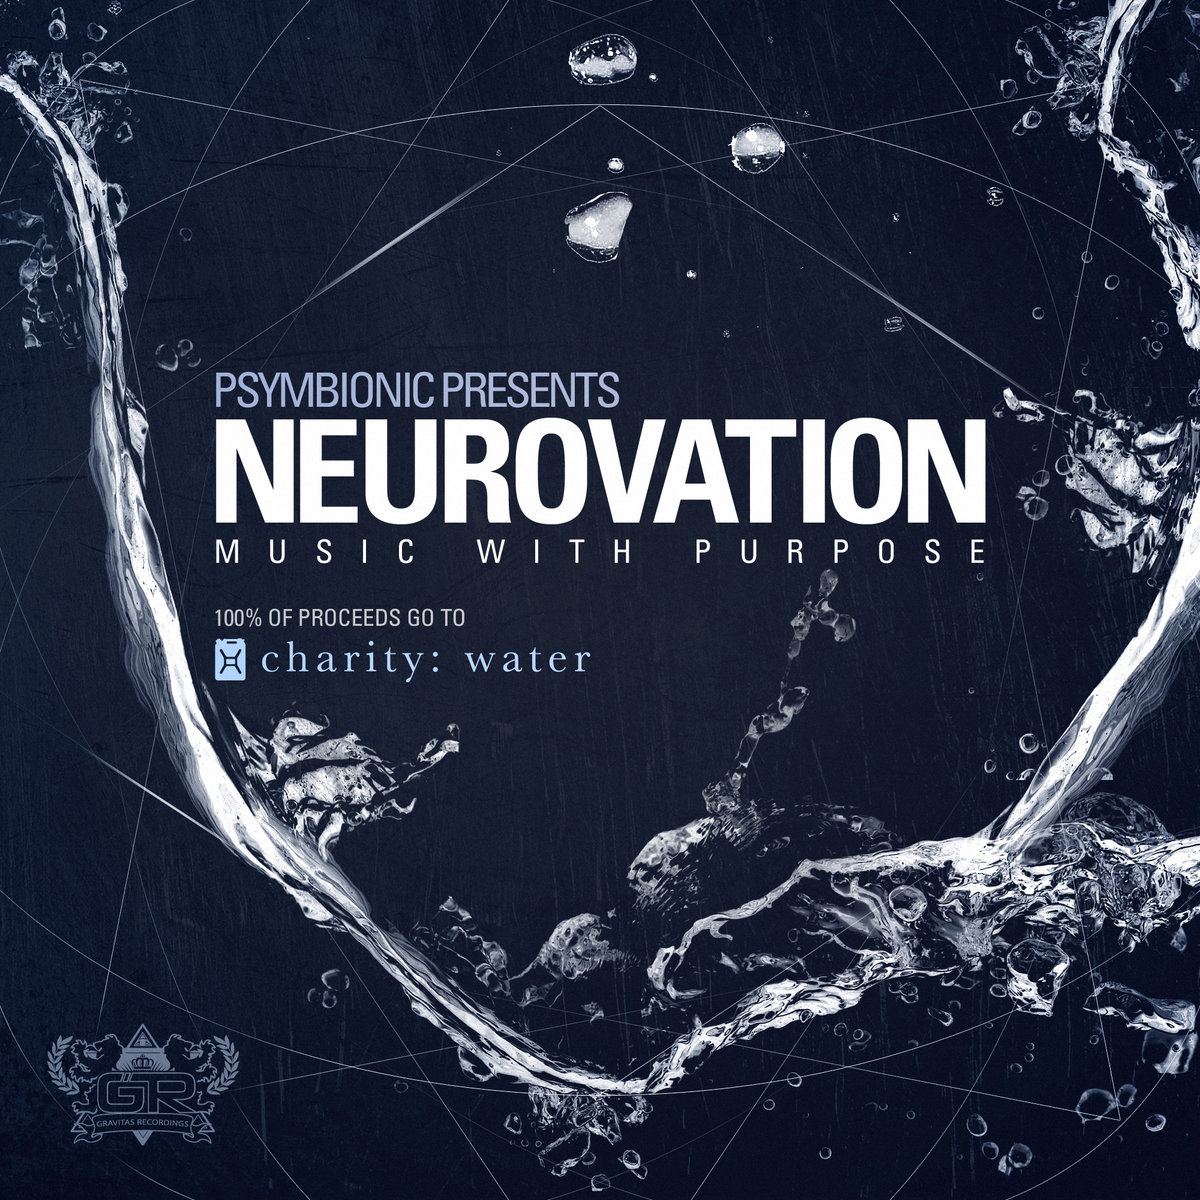 Kraddy - KraddyOperation Prometheus @ 'Psymbionic Presents: Neurovation' album (cryptex, glitch hop)